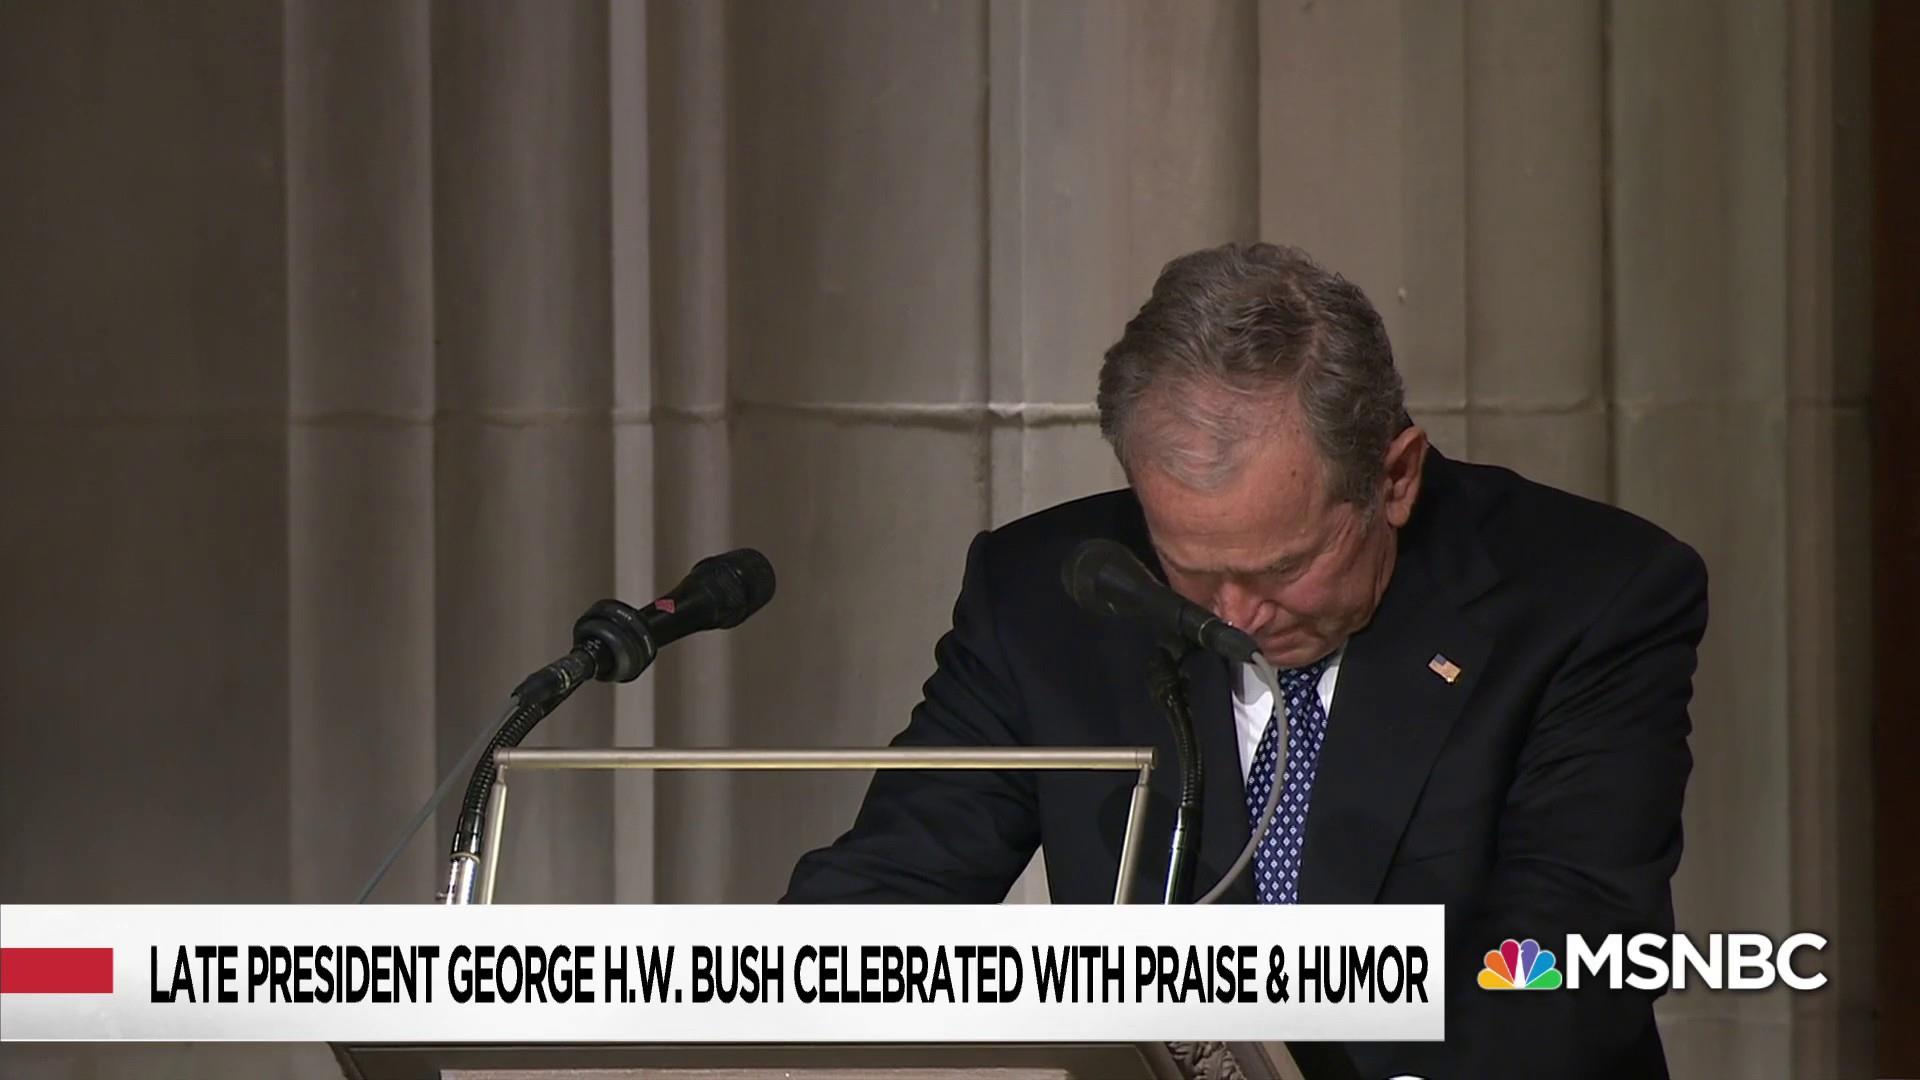 Presidents and dignitaries come together to honor George H.W. Bush